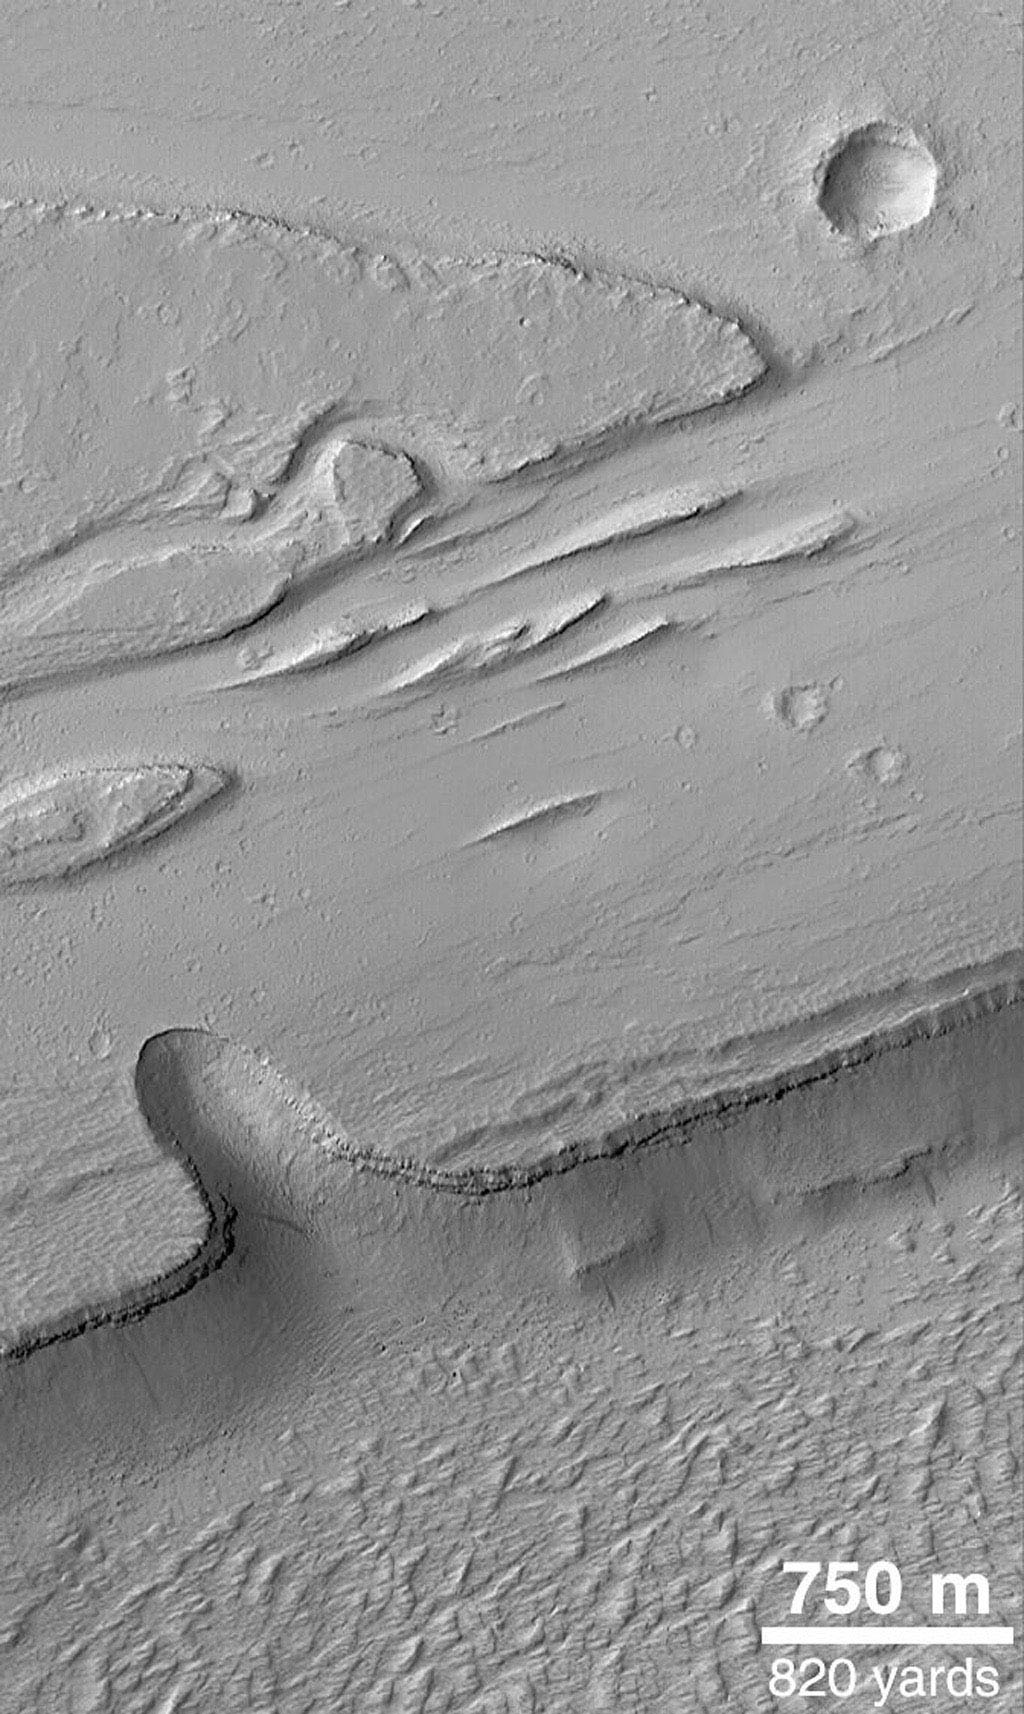 NASA's Mars Global Surveyor shows the Olympica Fossae, a complex array of deep troughs, channels and streamlined landforms in northern Tharsis. Water, mud, and lava are all thought to have played a role in the formation of these features.